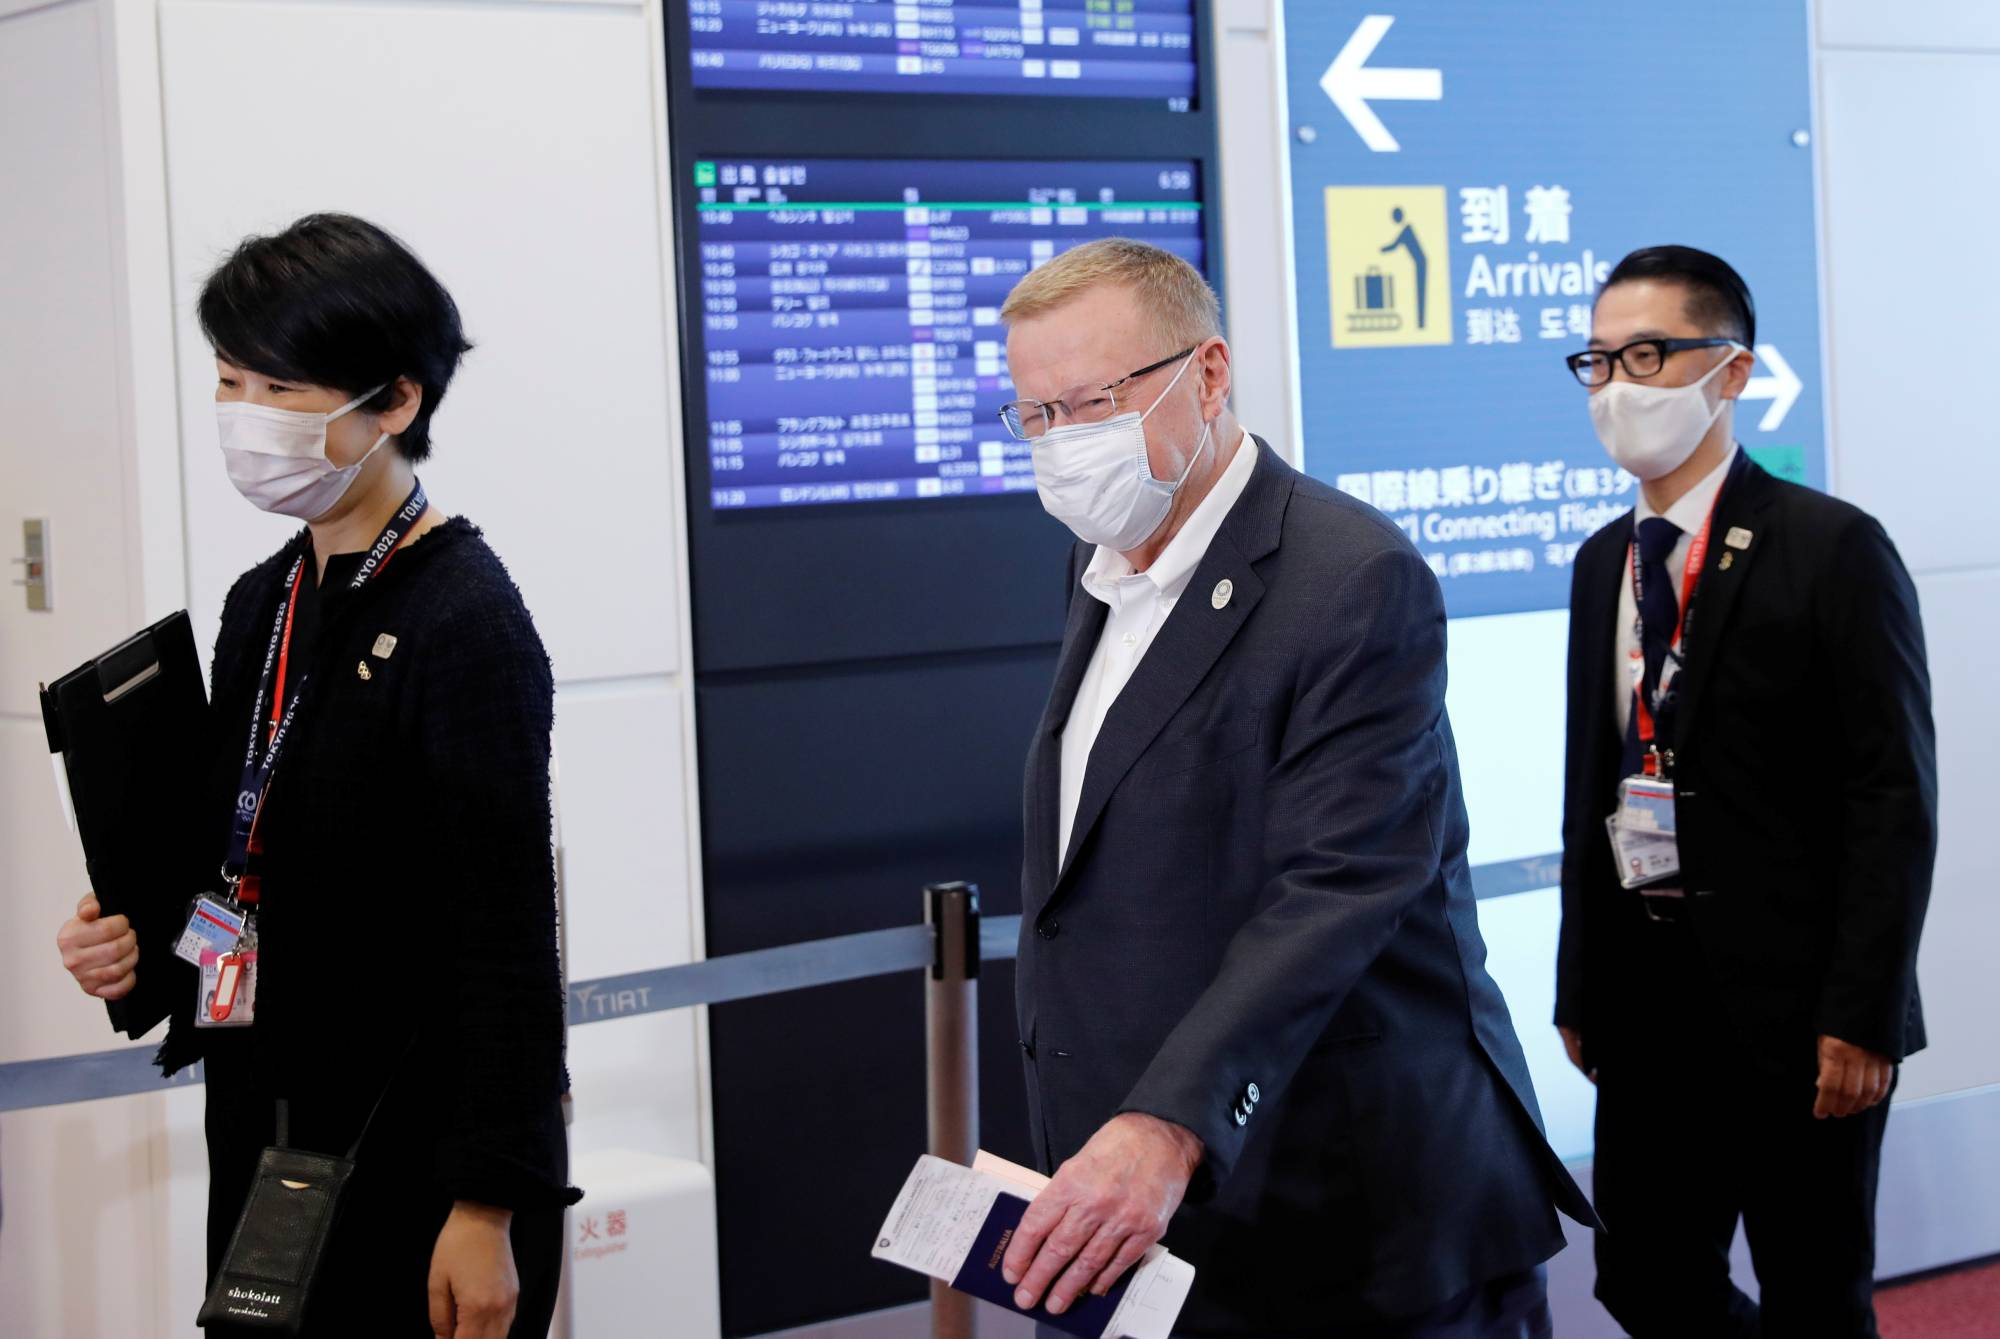 International Olympic Committee Vice President John Coates (center) arrives at Haneda Airport in Tokyo on Tuesday. | REUTERS